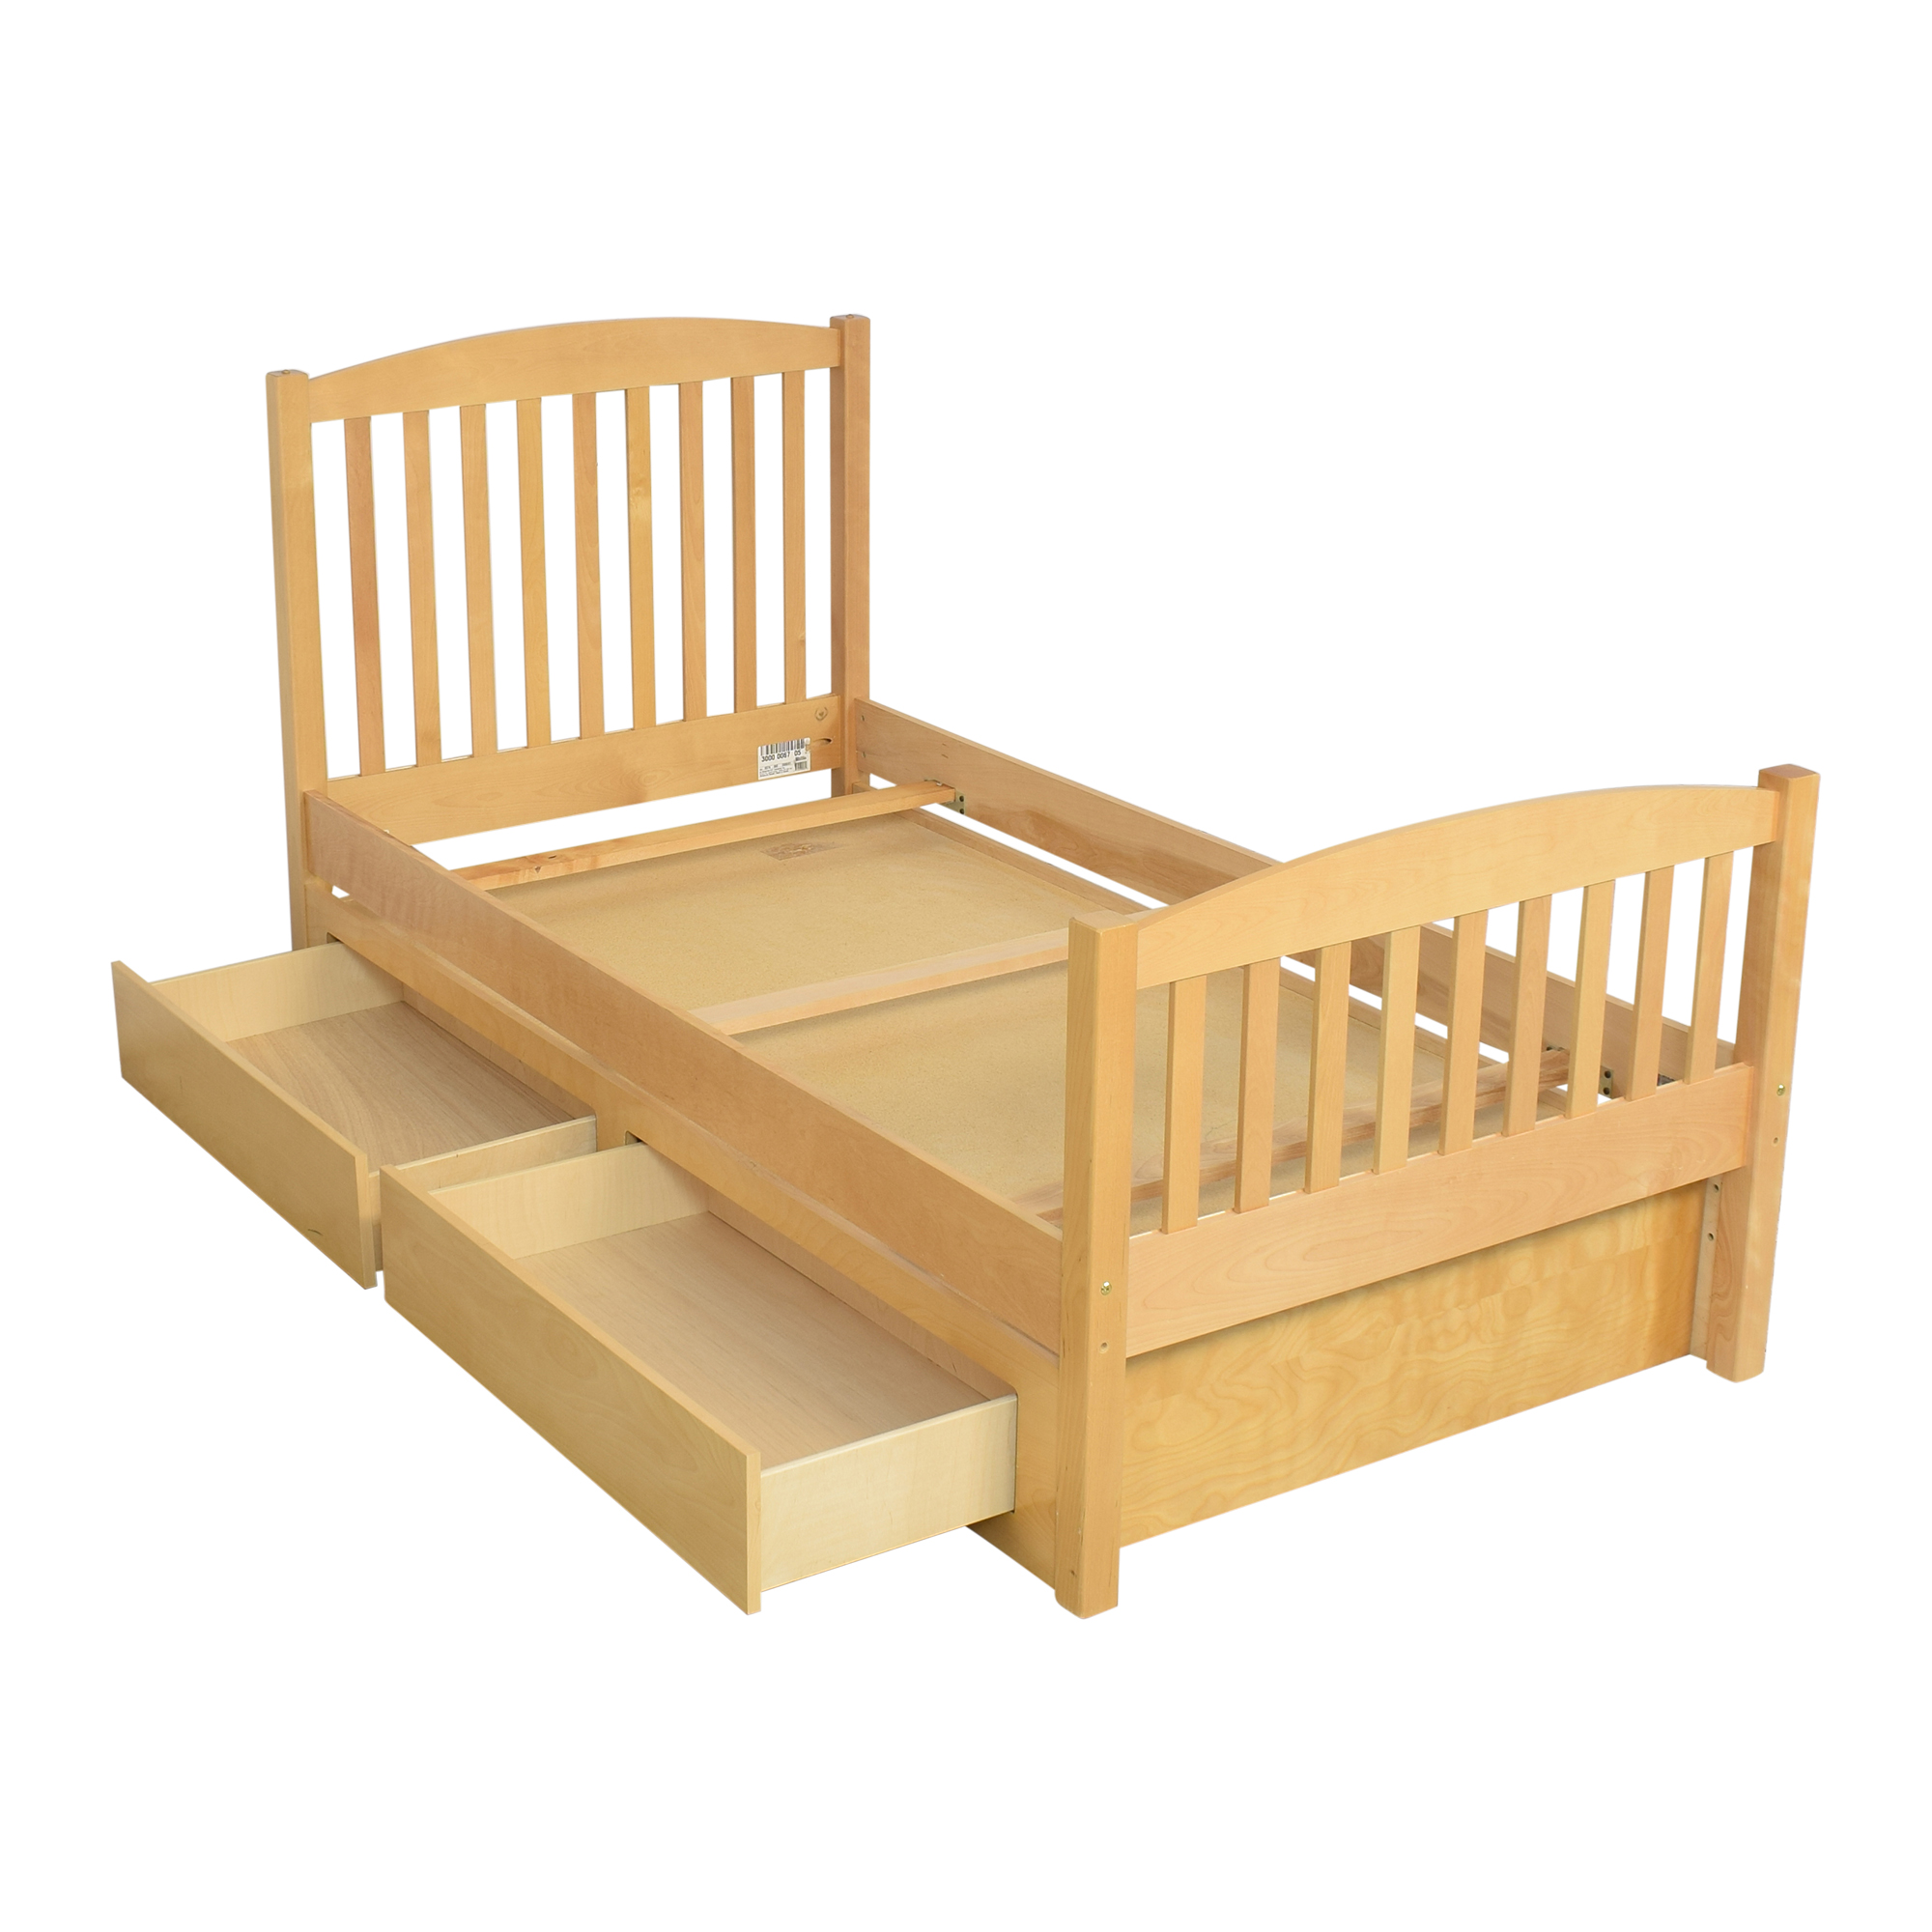 AP Industries AP Industries Twin Bed with Storage for sale